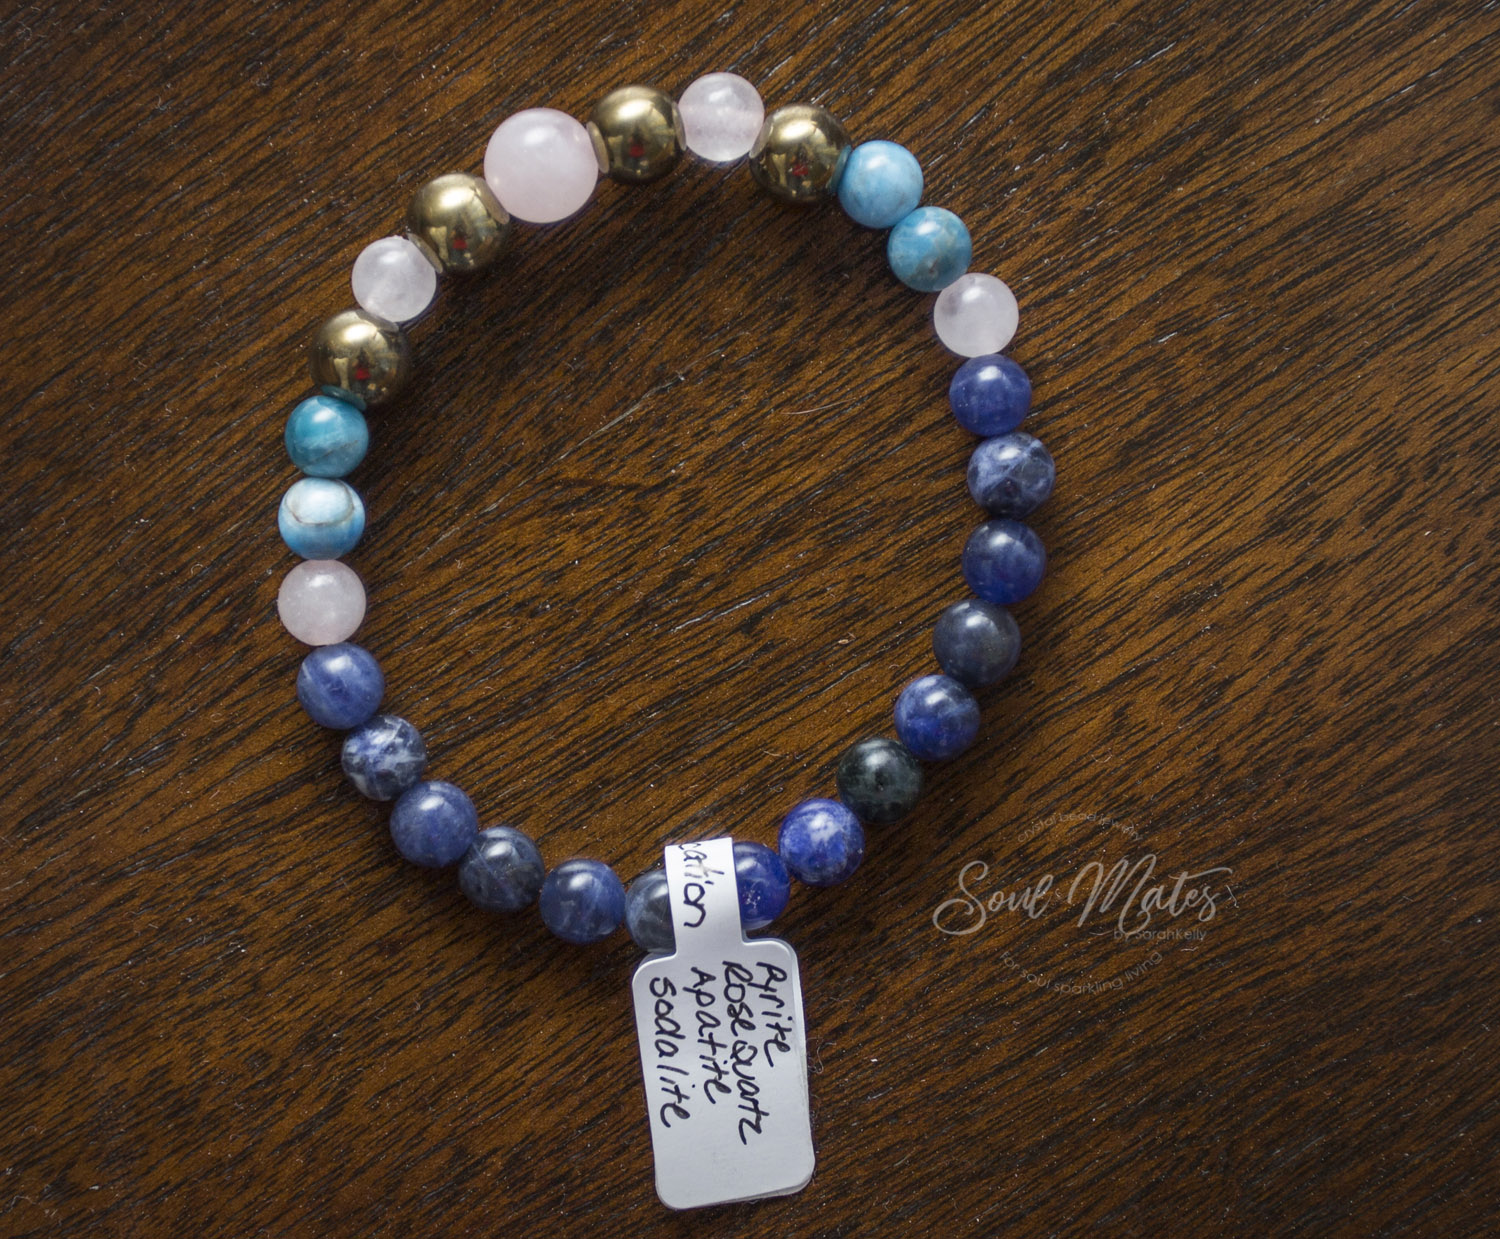 Intuition  - Sodalite, Apatite, Rose Quartz and Pyrite - Unites logic with intuition, stimulating clear communication from a clear heart.  Great for day, night wear and meditation.  $30